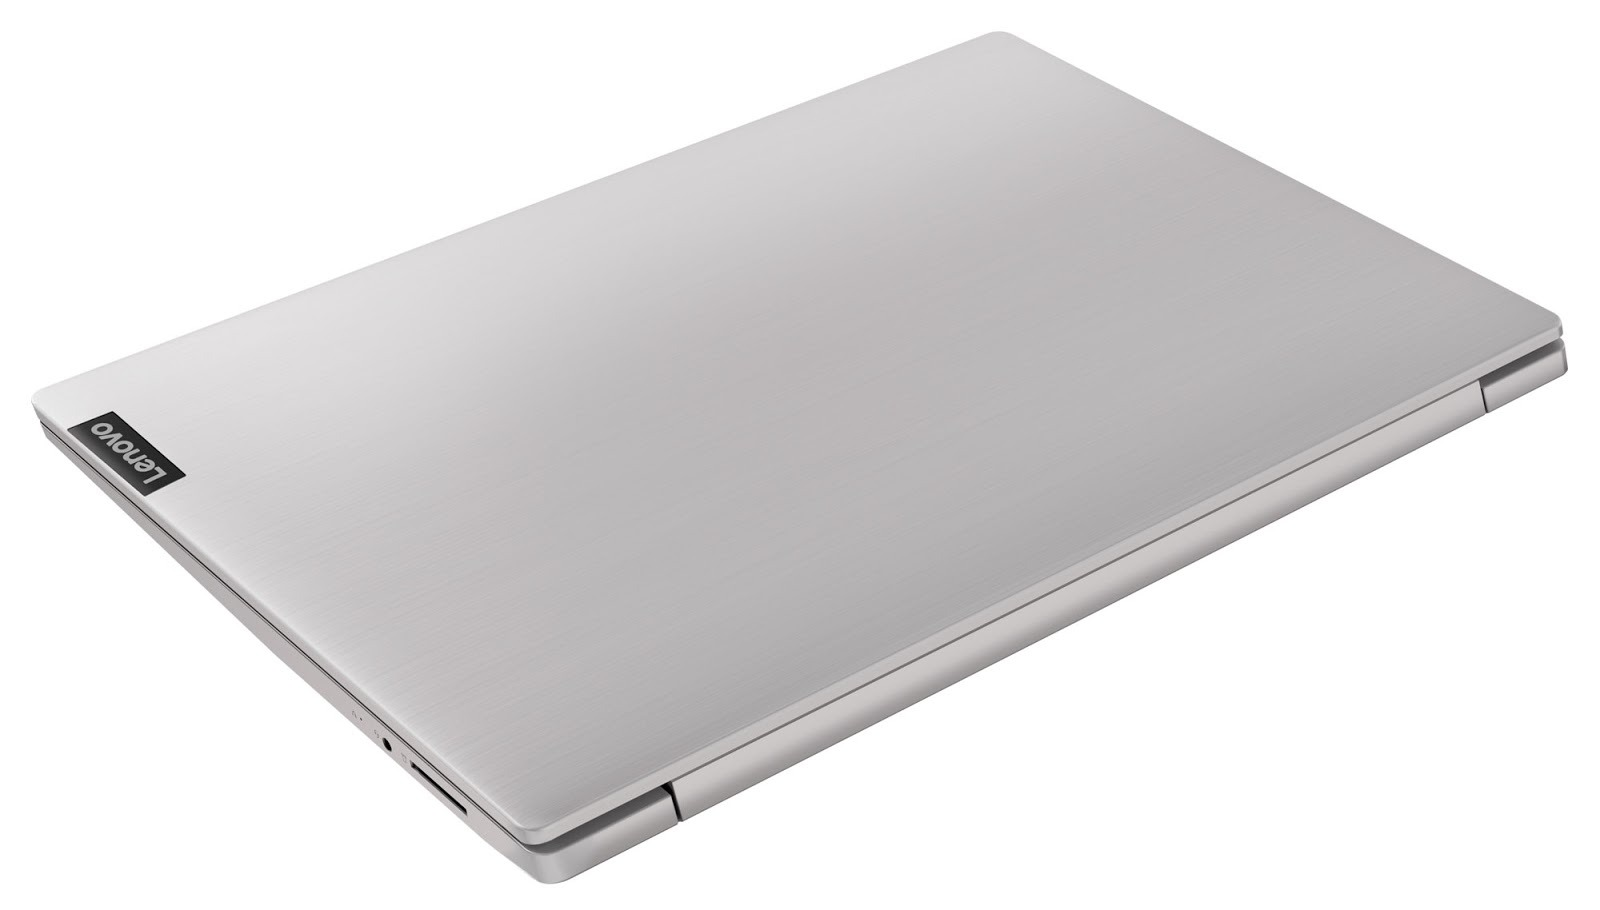 Фото 3. Ноутбук Lenovo ideapad S145-15IGM Platinum Grey (81MX003JRE)